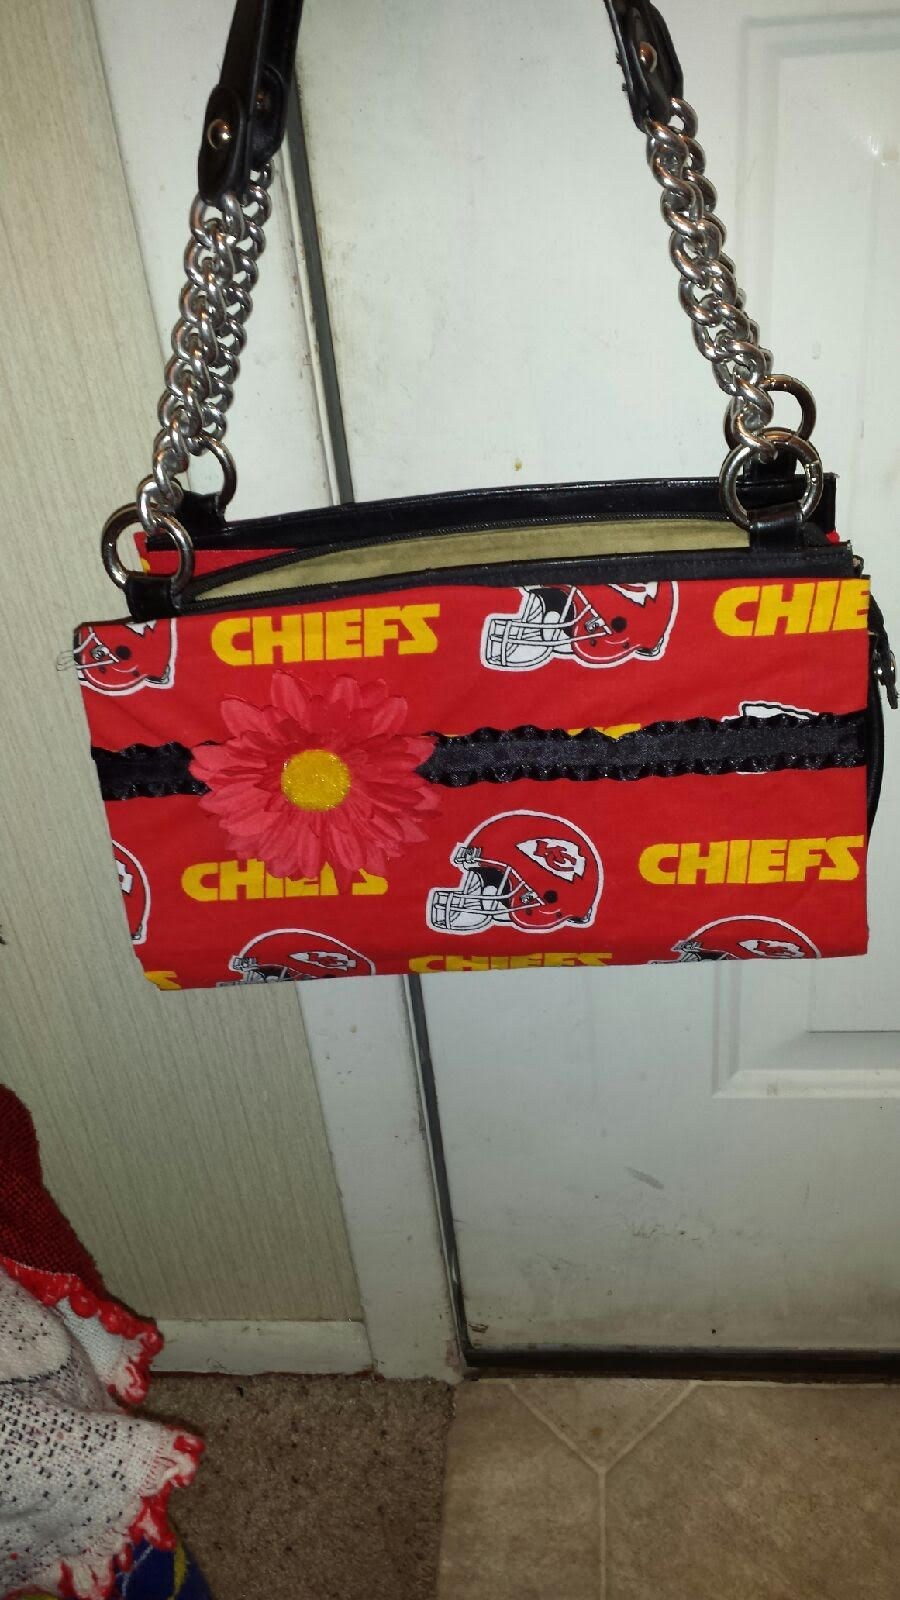 Miche Has Gone Out Of Business I Decided To Make My Own Cover Yay Kc Chiefs Next The Royals